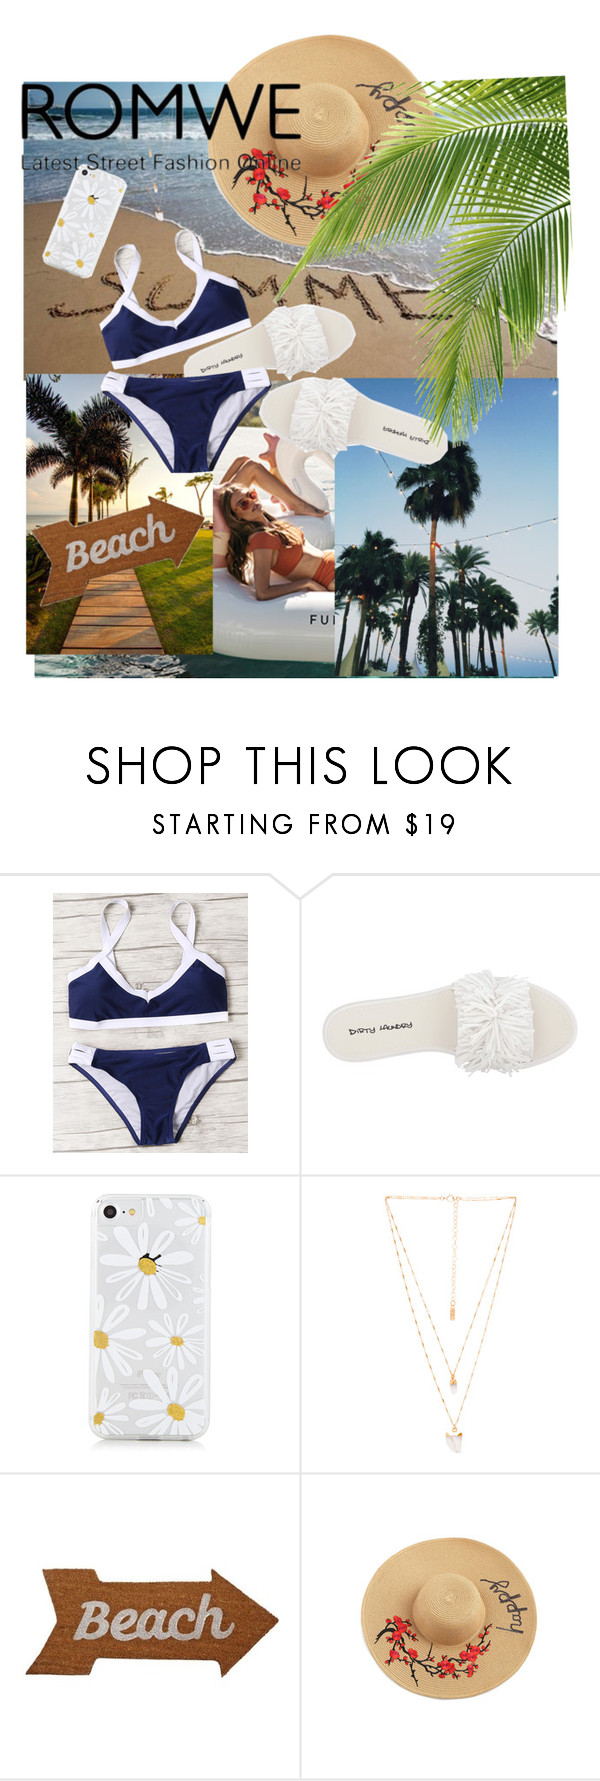 """Romwe summer"" by mamilburudiez ❤ liked on Polyvore featuring Dirty Laundry, Natalie B and Mud Pie"